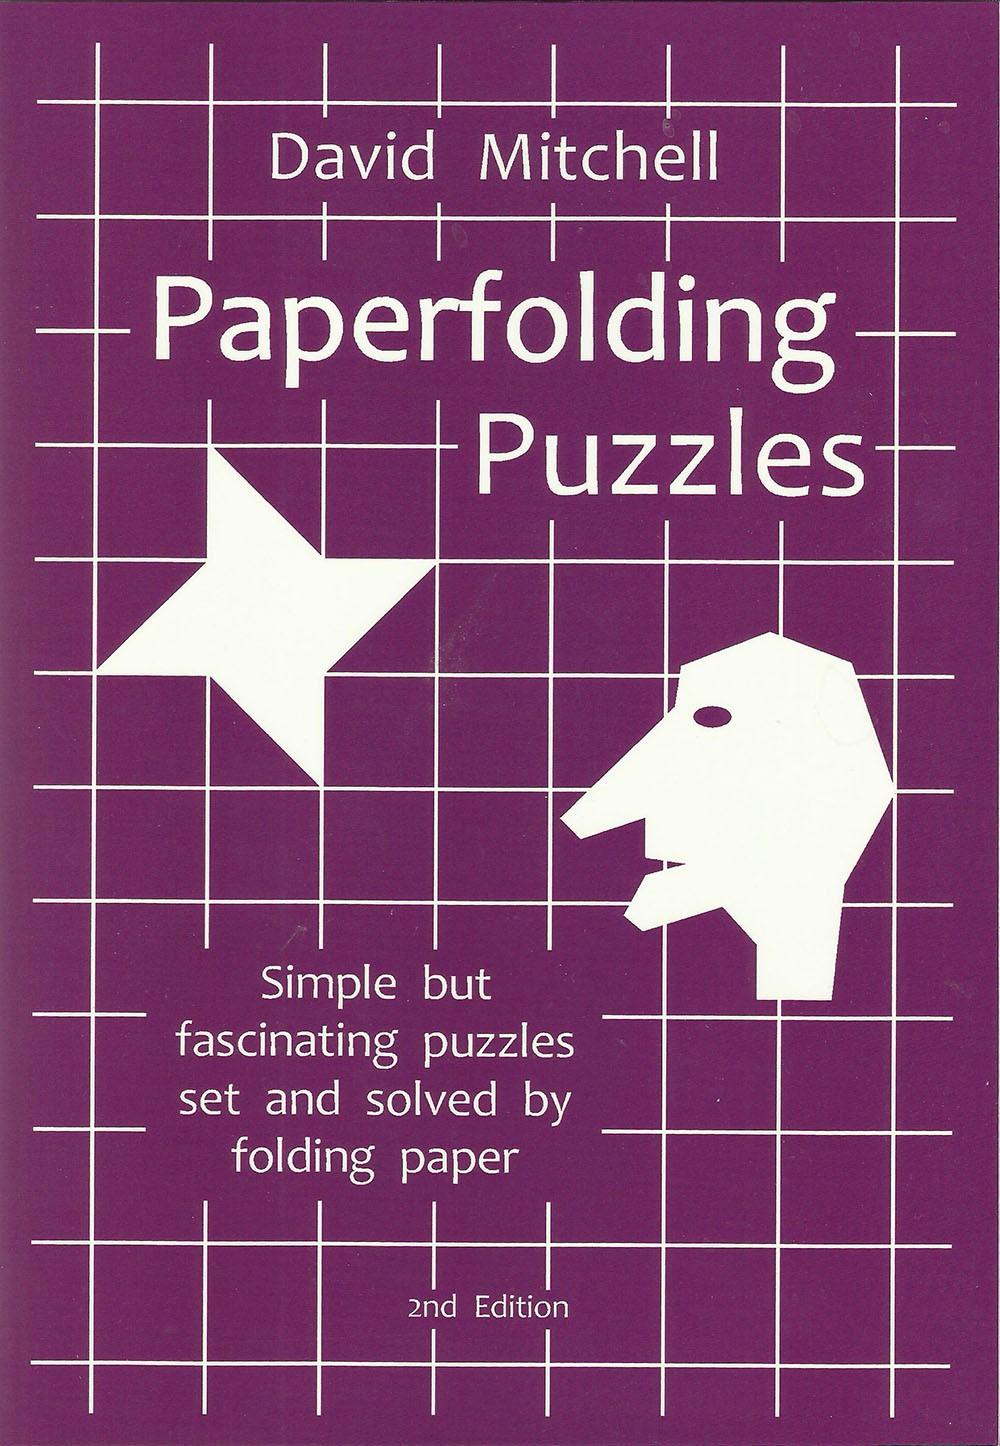 Paperfolding Puzzles